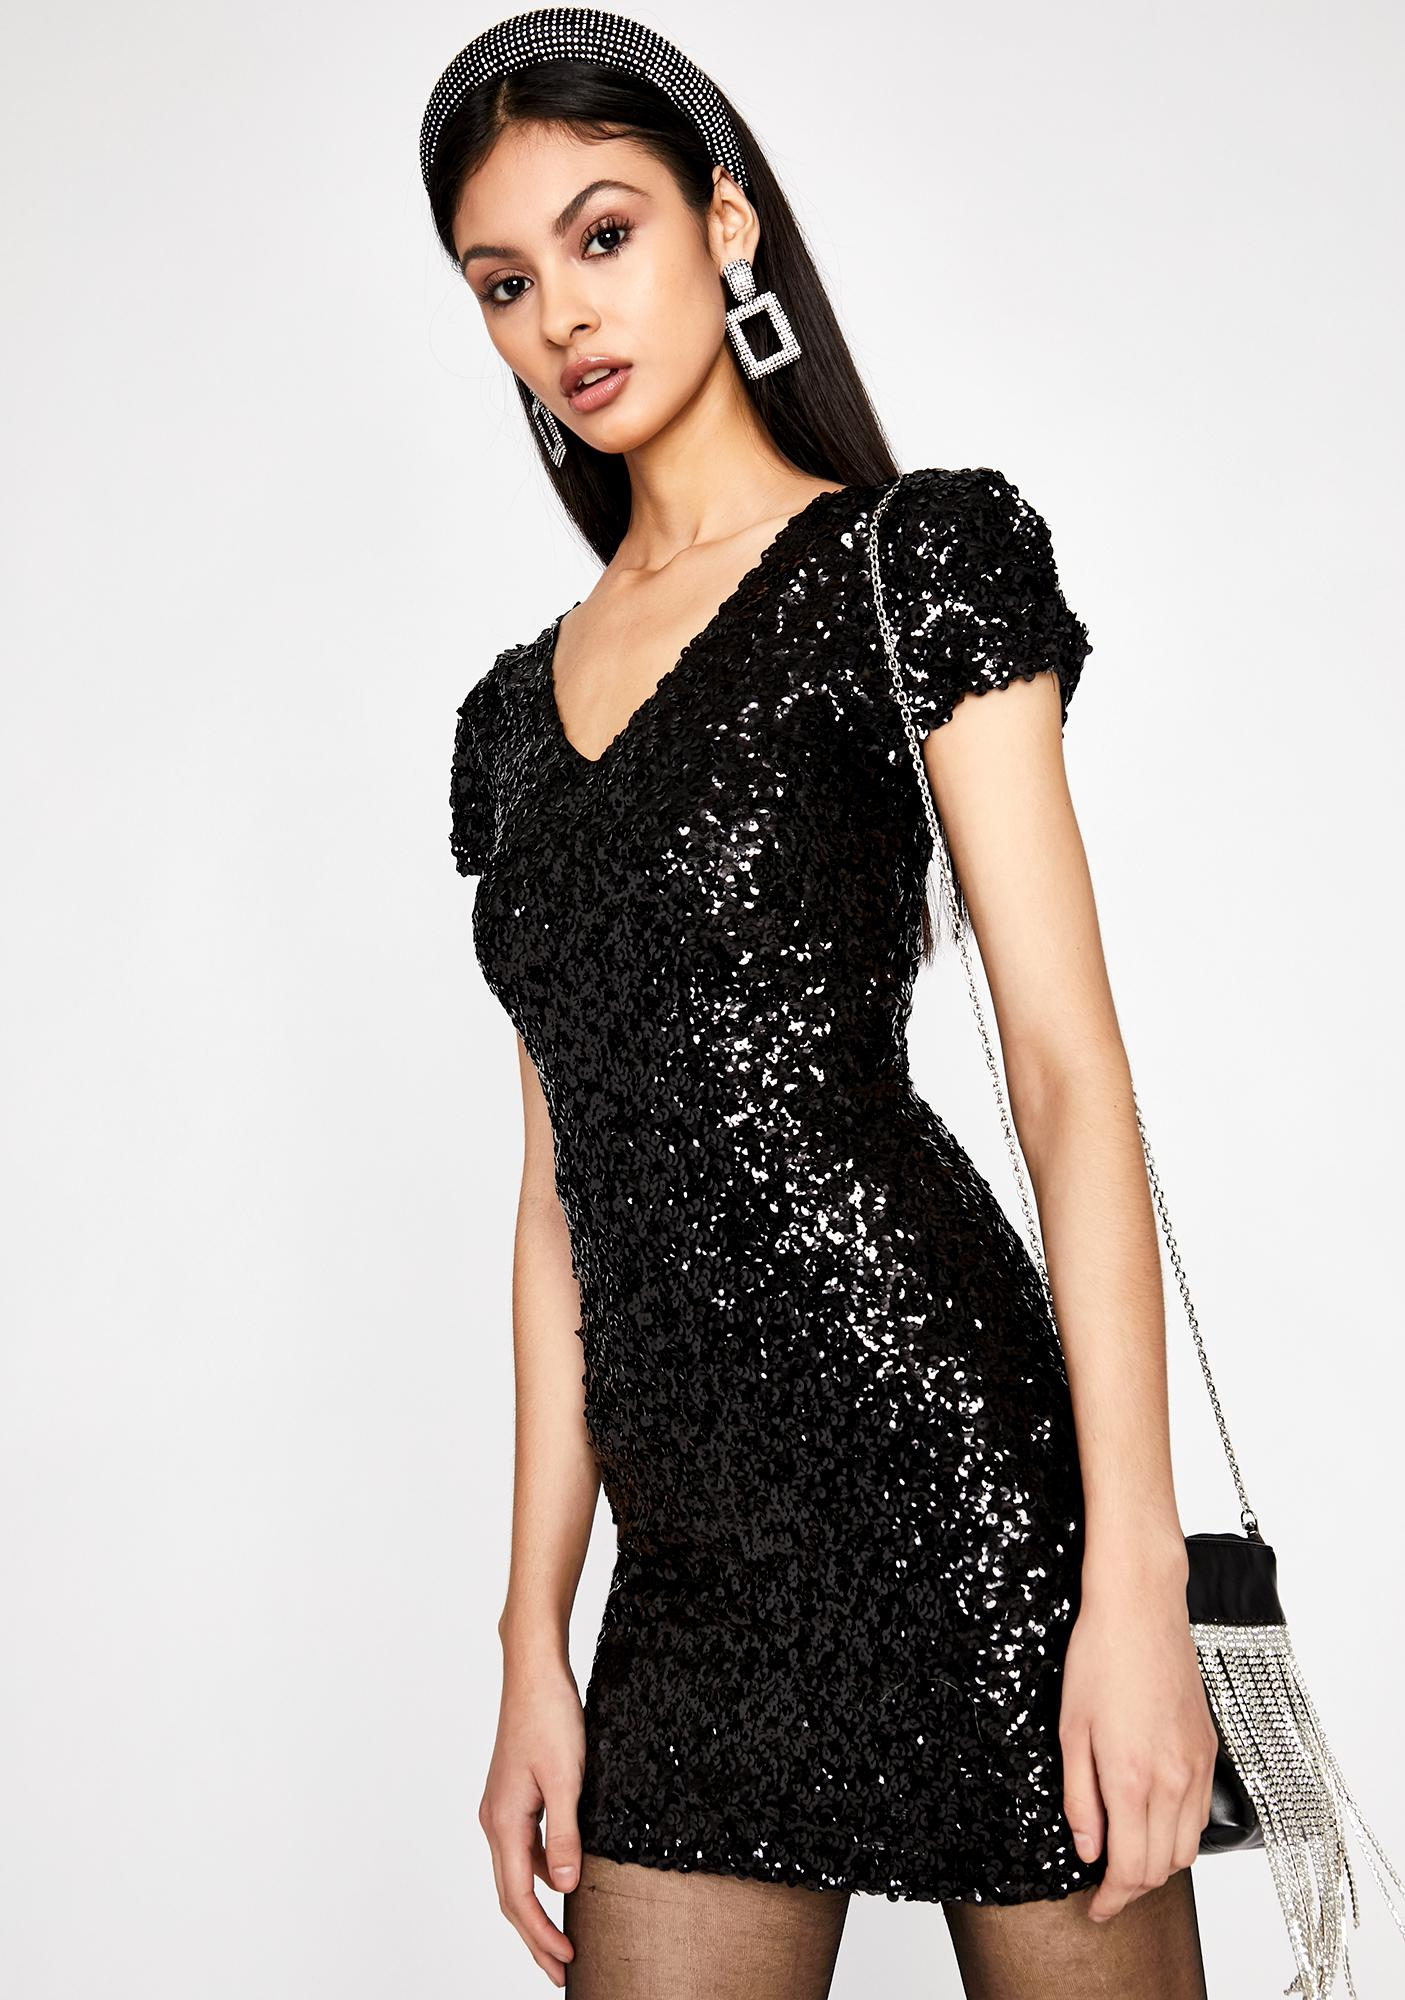 80s Prom Night Sequin Dress